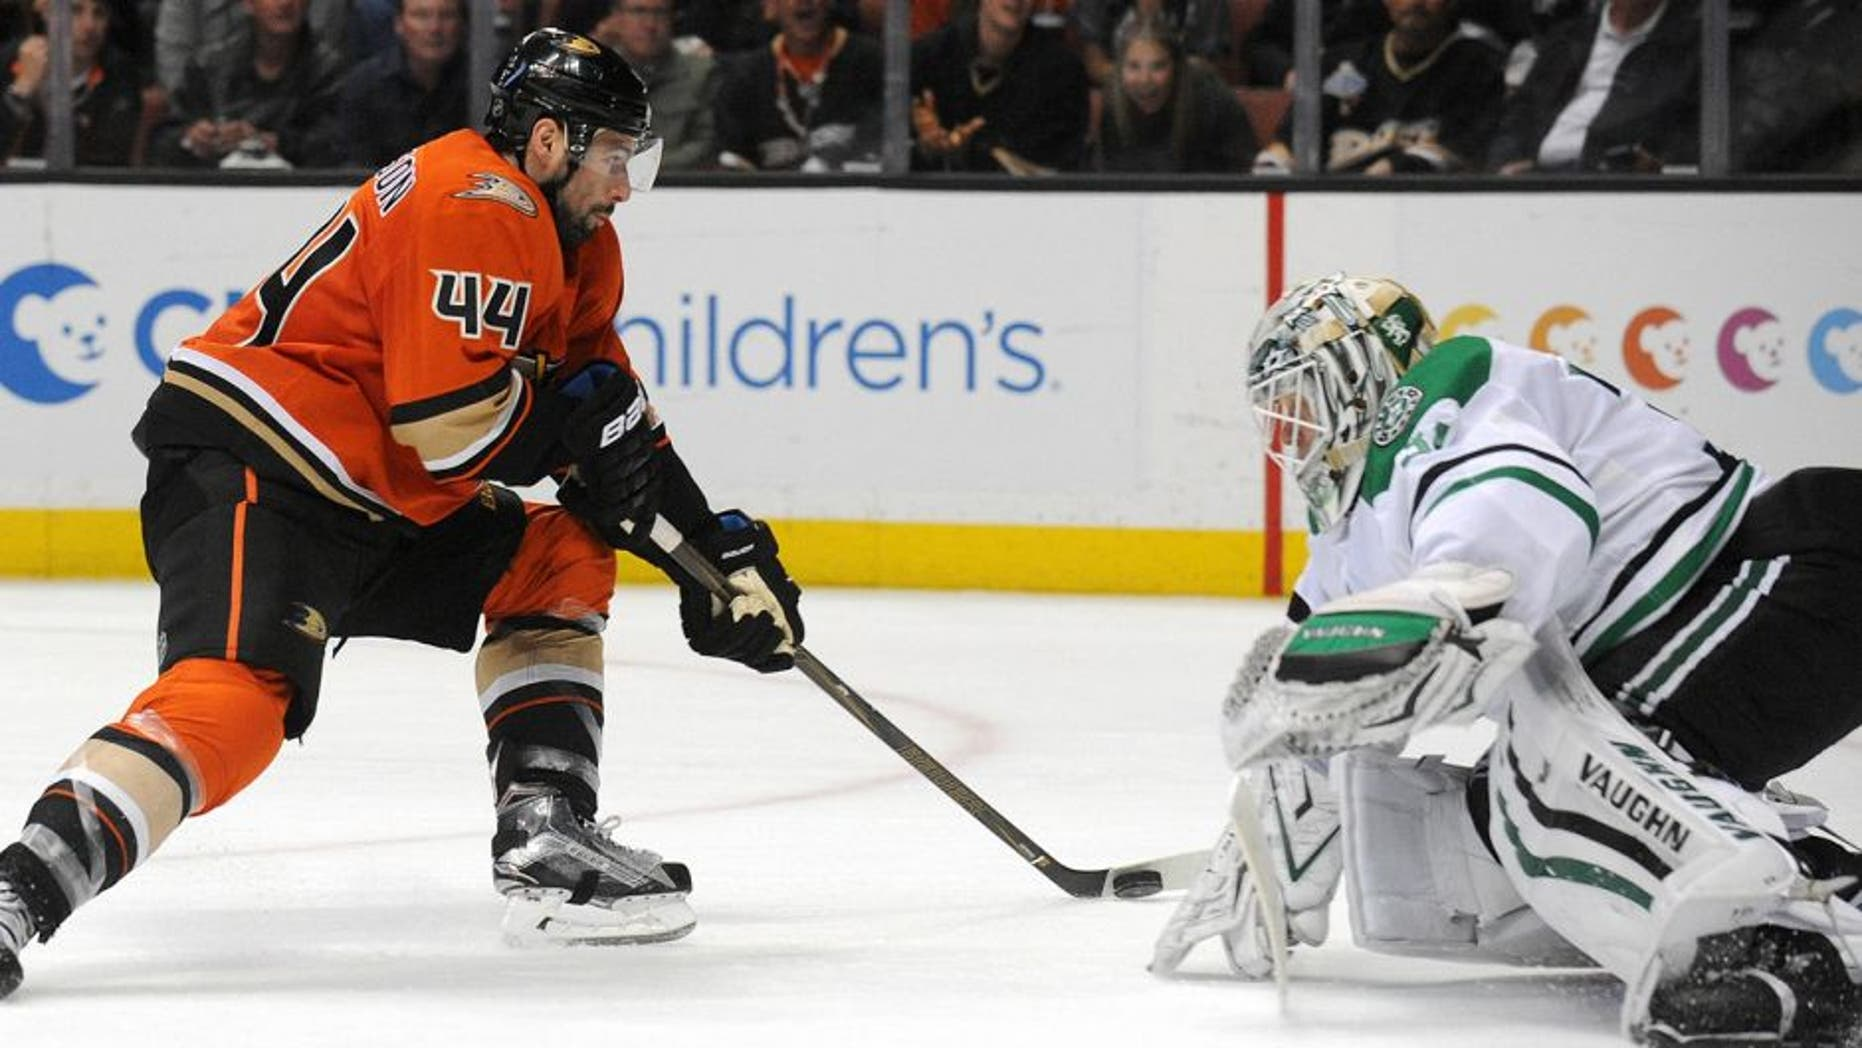 April 3, 2016; Anaheim, CA, USA; Anaheim Ducks center Nate Thompson (44) moves in to score a short handed goal against Dallas Stars goalie Antti Niemi (31) during the second period at Honda Center. Mandatory Credit: Gary A. Vasquez-USA TODAY Sports